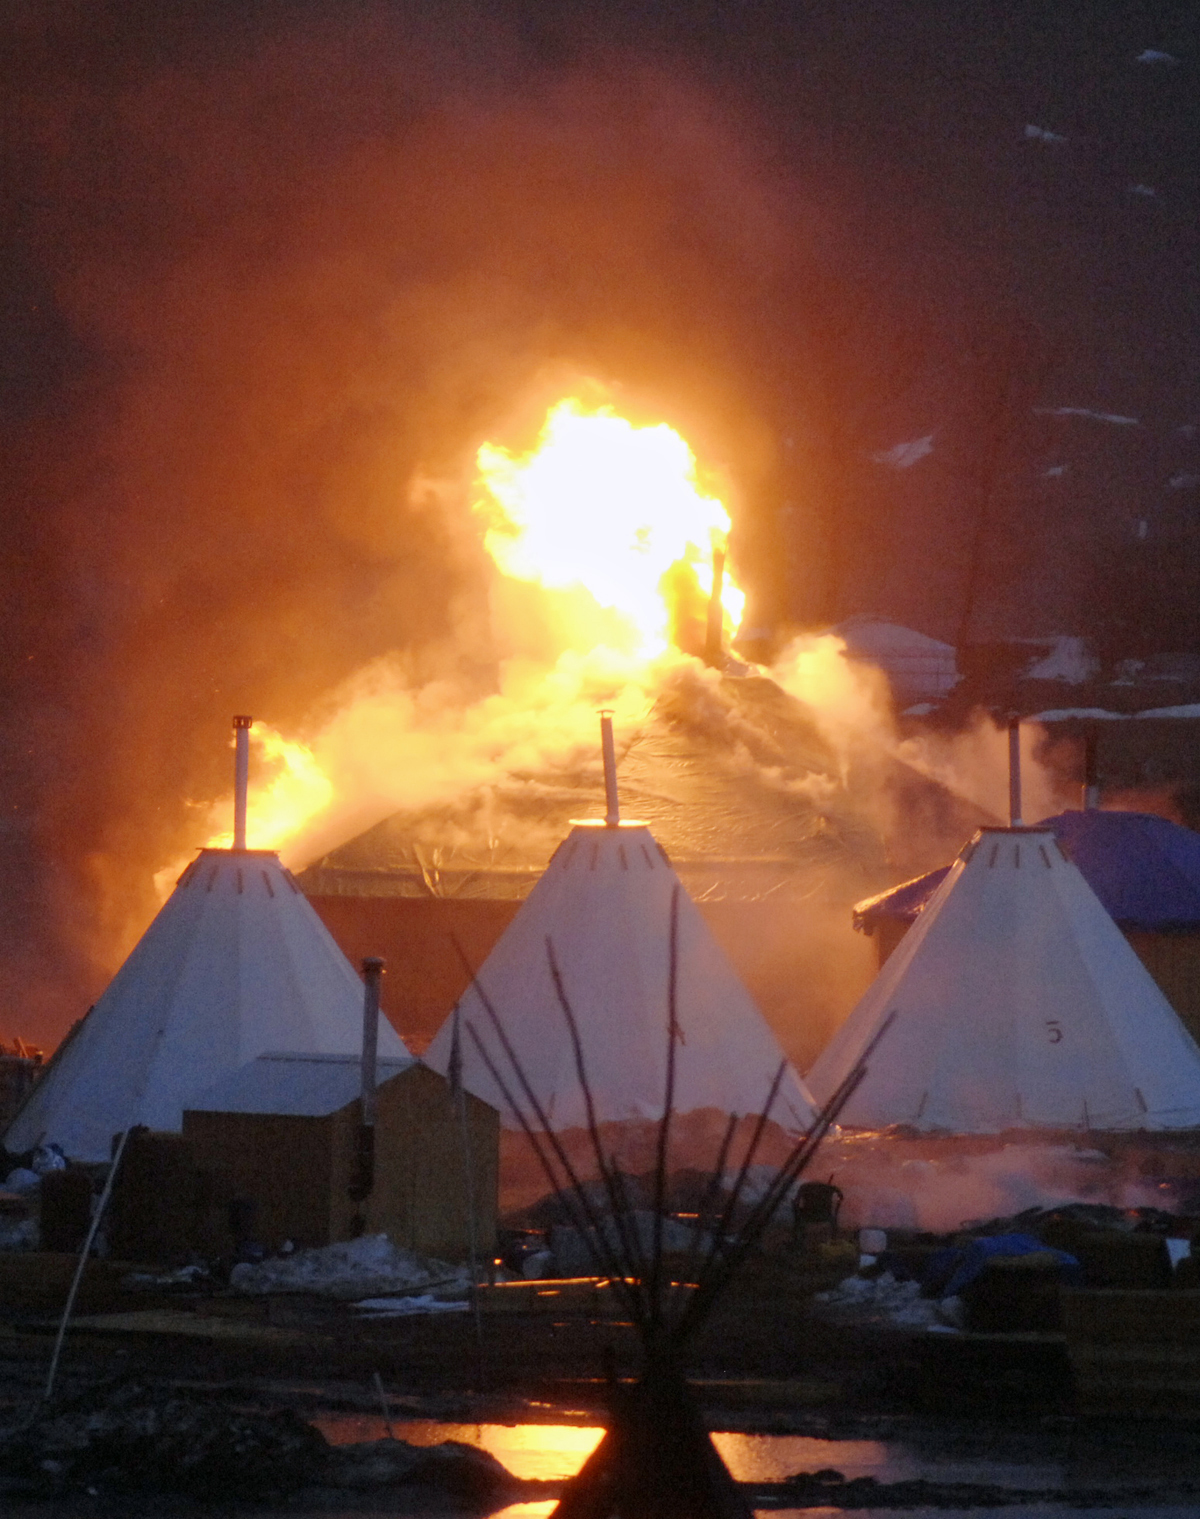 A fire on a building at a camp that has been home to demonstrators against the Dakota Access pipeline is seen after protesters set fire in Cannon Ball, N.D., on Feb. 22, 2017. (Mike Mccleary/The Bismarck Tribune via AP)